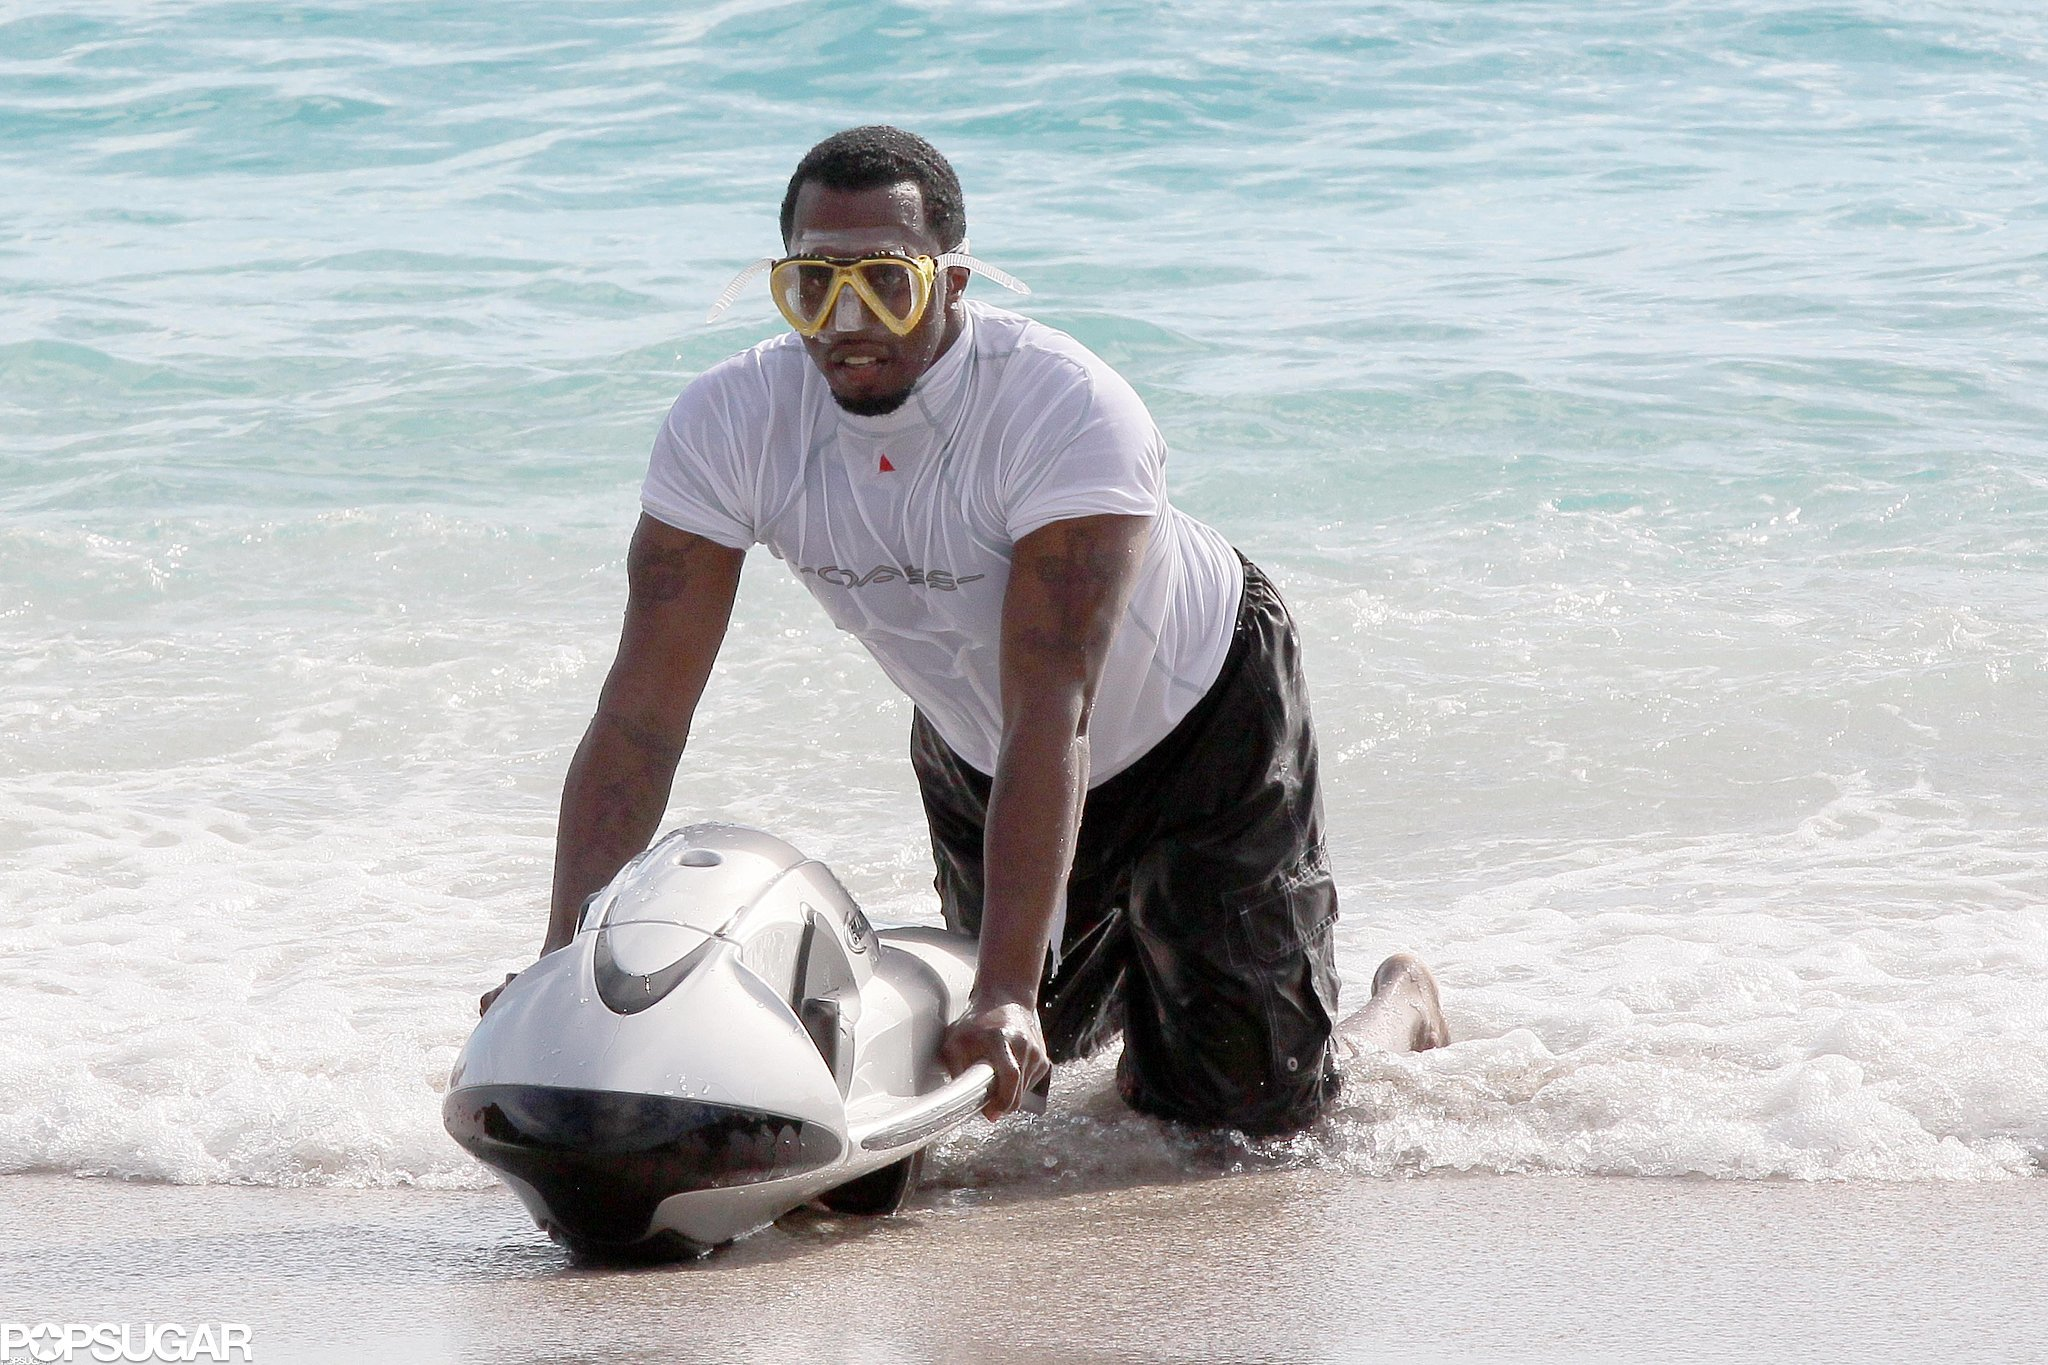 Diddy played around in the St. Bart's water in December 2012 during a family vacation.